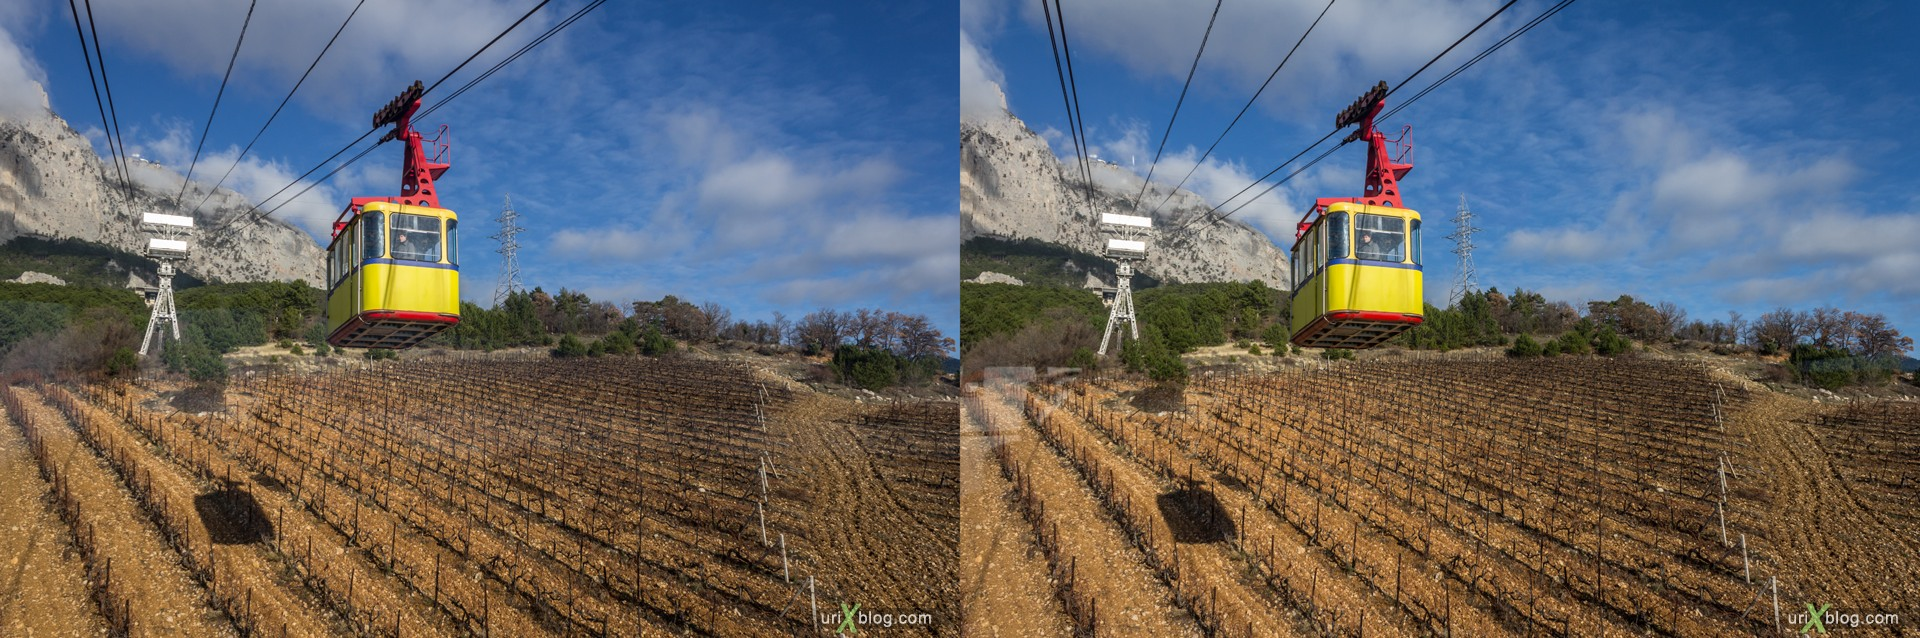 2012, Ai-Petri, mountains, Crimea, Russia, Ukraine, cableway, winter, 3D, stereo pair, cross-eyed, crossview, cross view stereo pair, stereoscopic